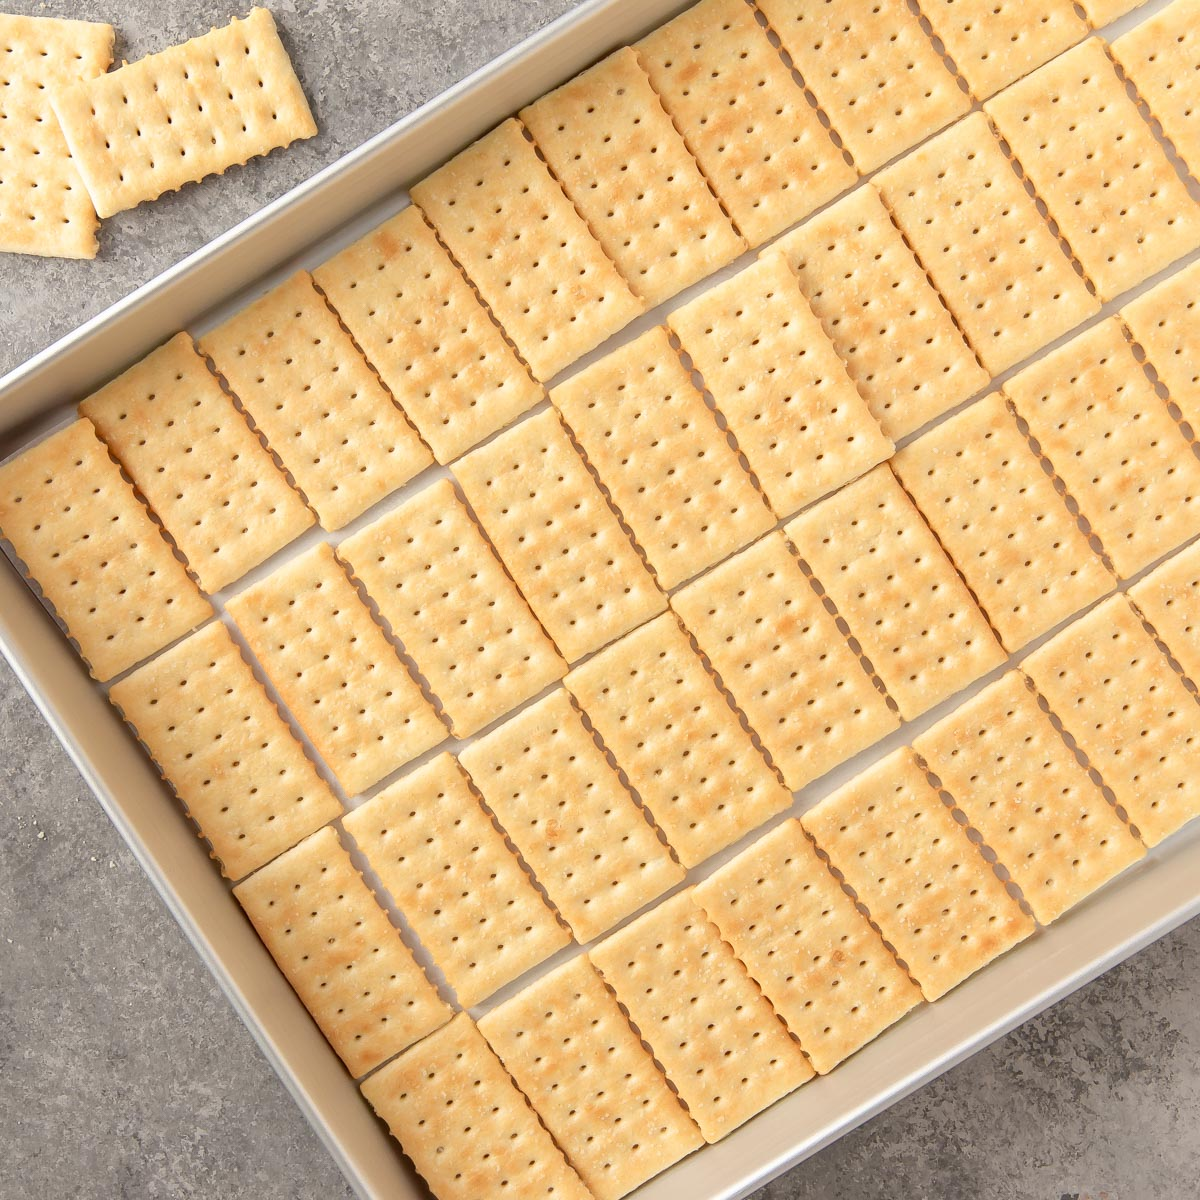 a jelly roll pan lined with crackers